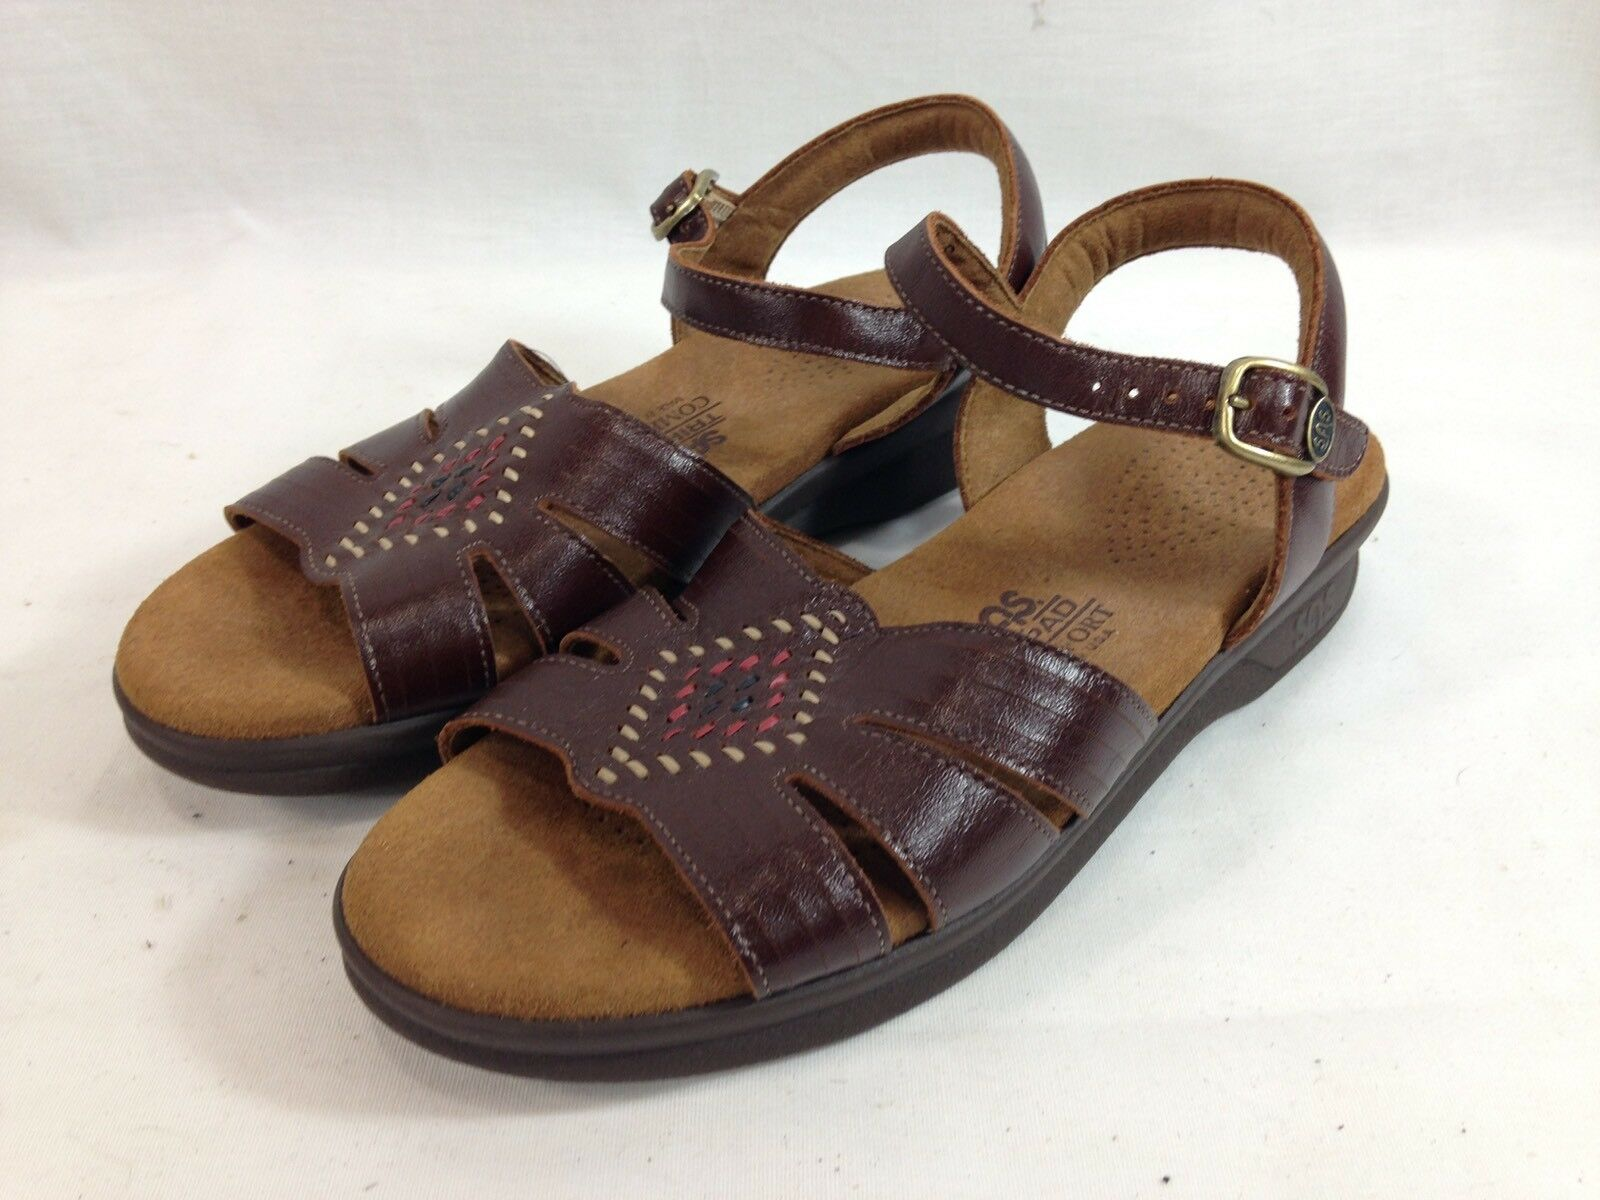 SAS Tripad Comfort Sandals shoes Womens Womens Womens 6 Brown Open Toe Ankle Strap USA 669f29